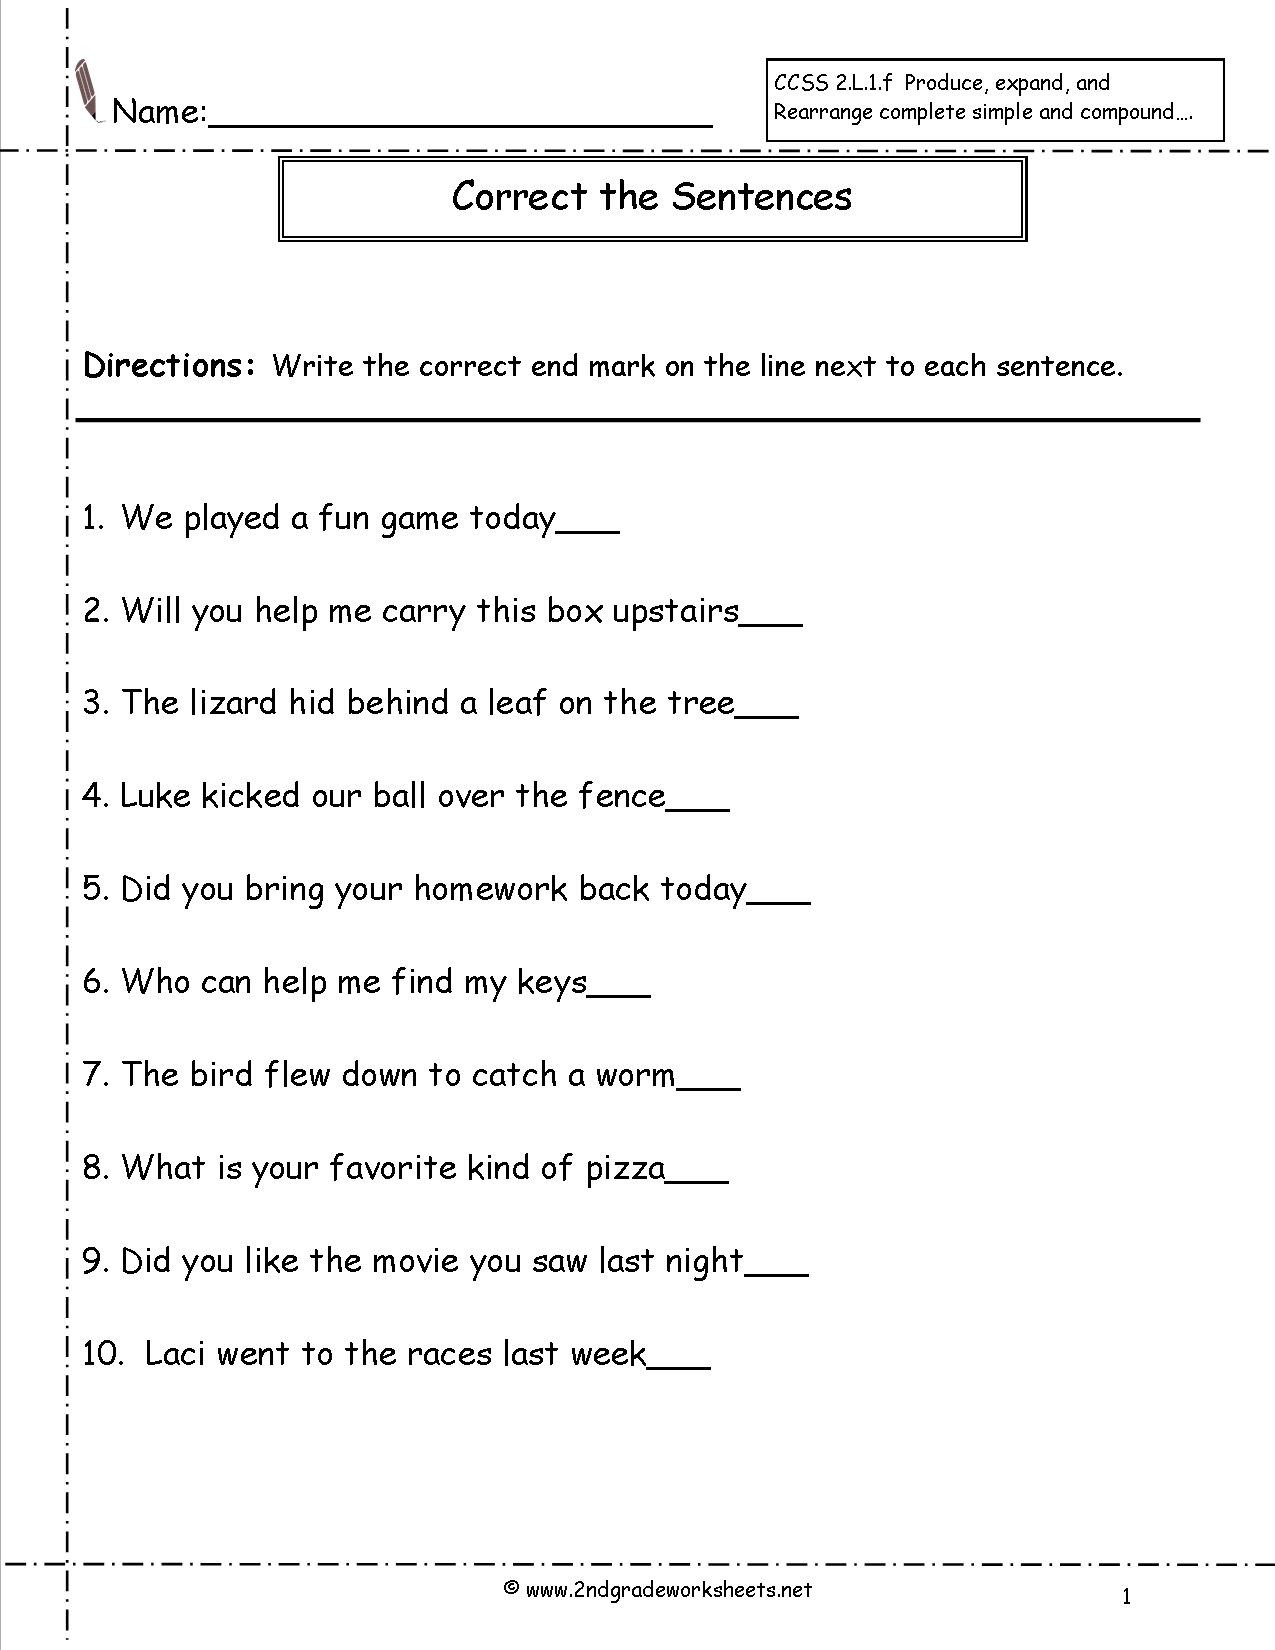 Topic Sentence Worksheets 4th Grade Sentence Correction Worksheets 6th Grade